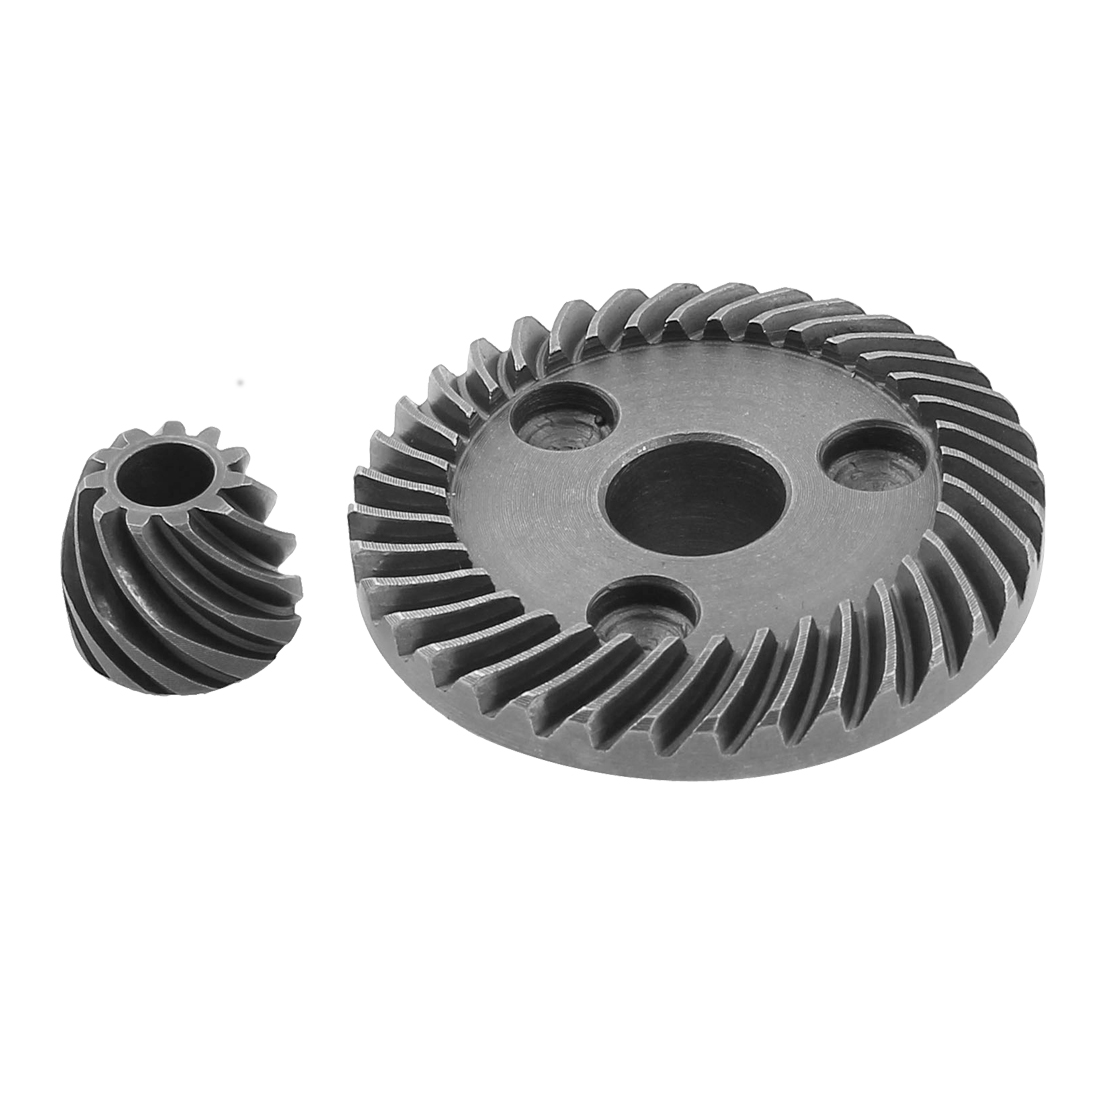 Spare Part Electric Angle Grinder Spiral Bevel Gear Set for Matika 9523